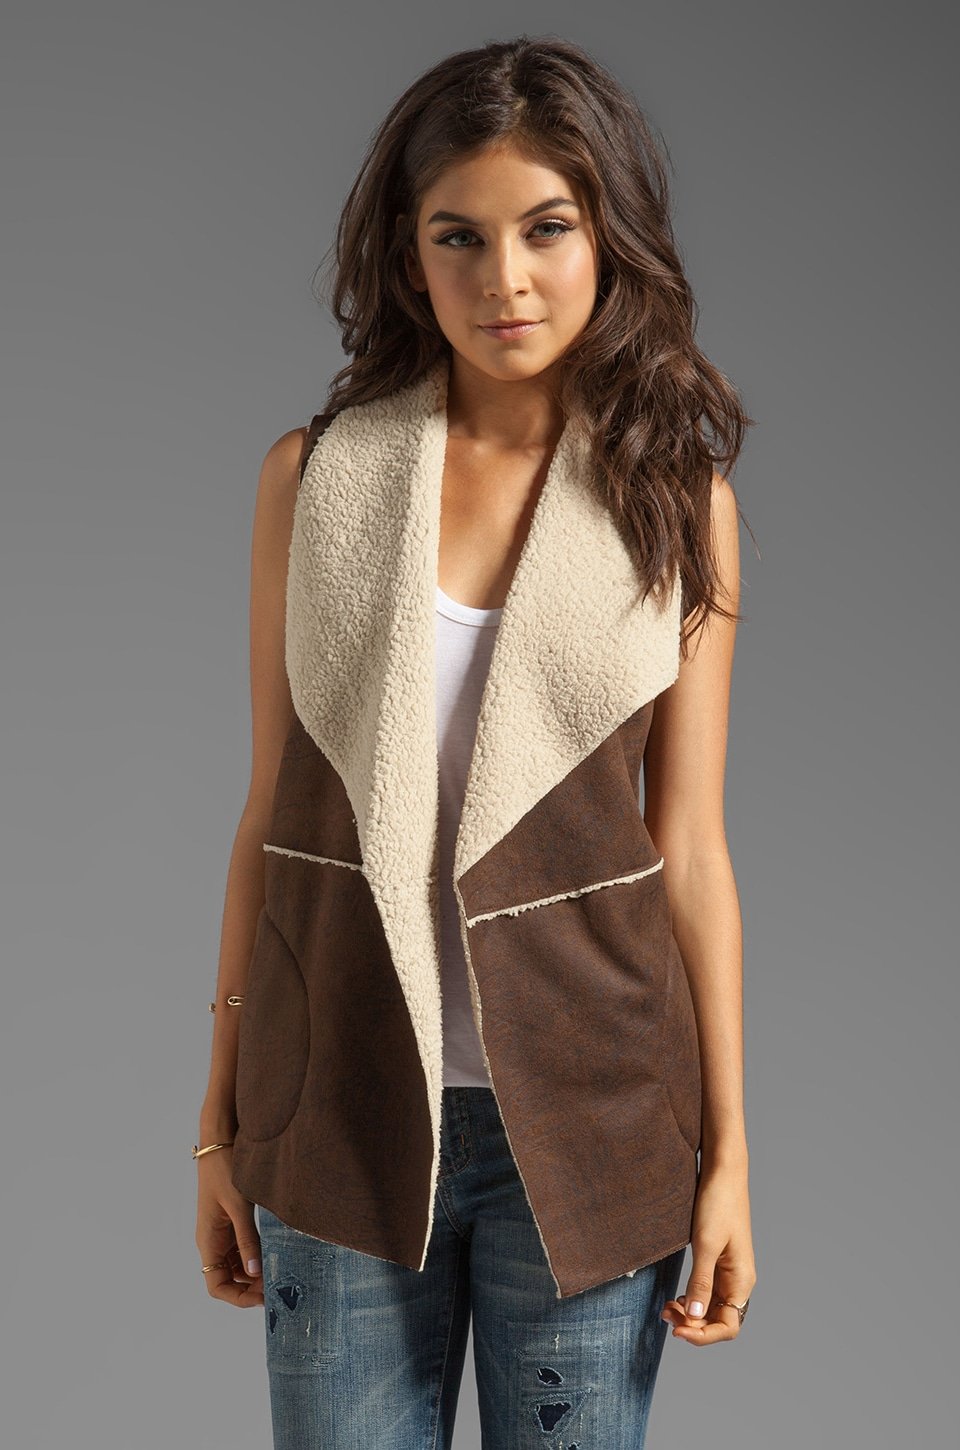 C&C California Distressed Faux Shearling Vest in Coffee